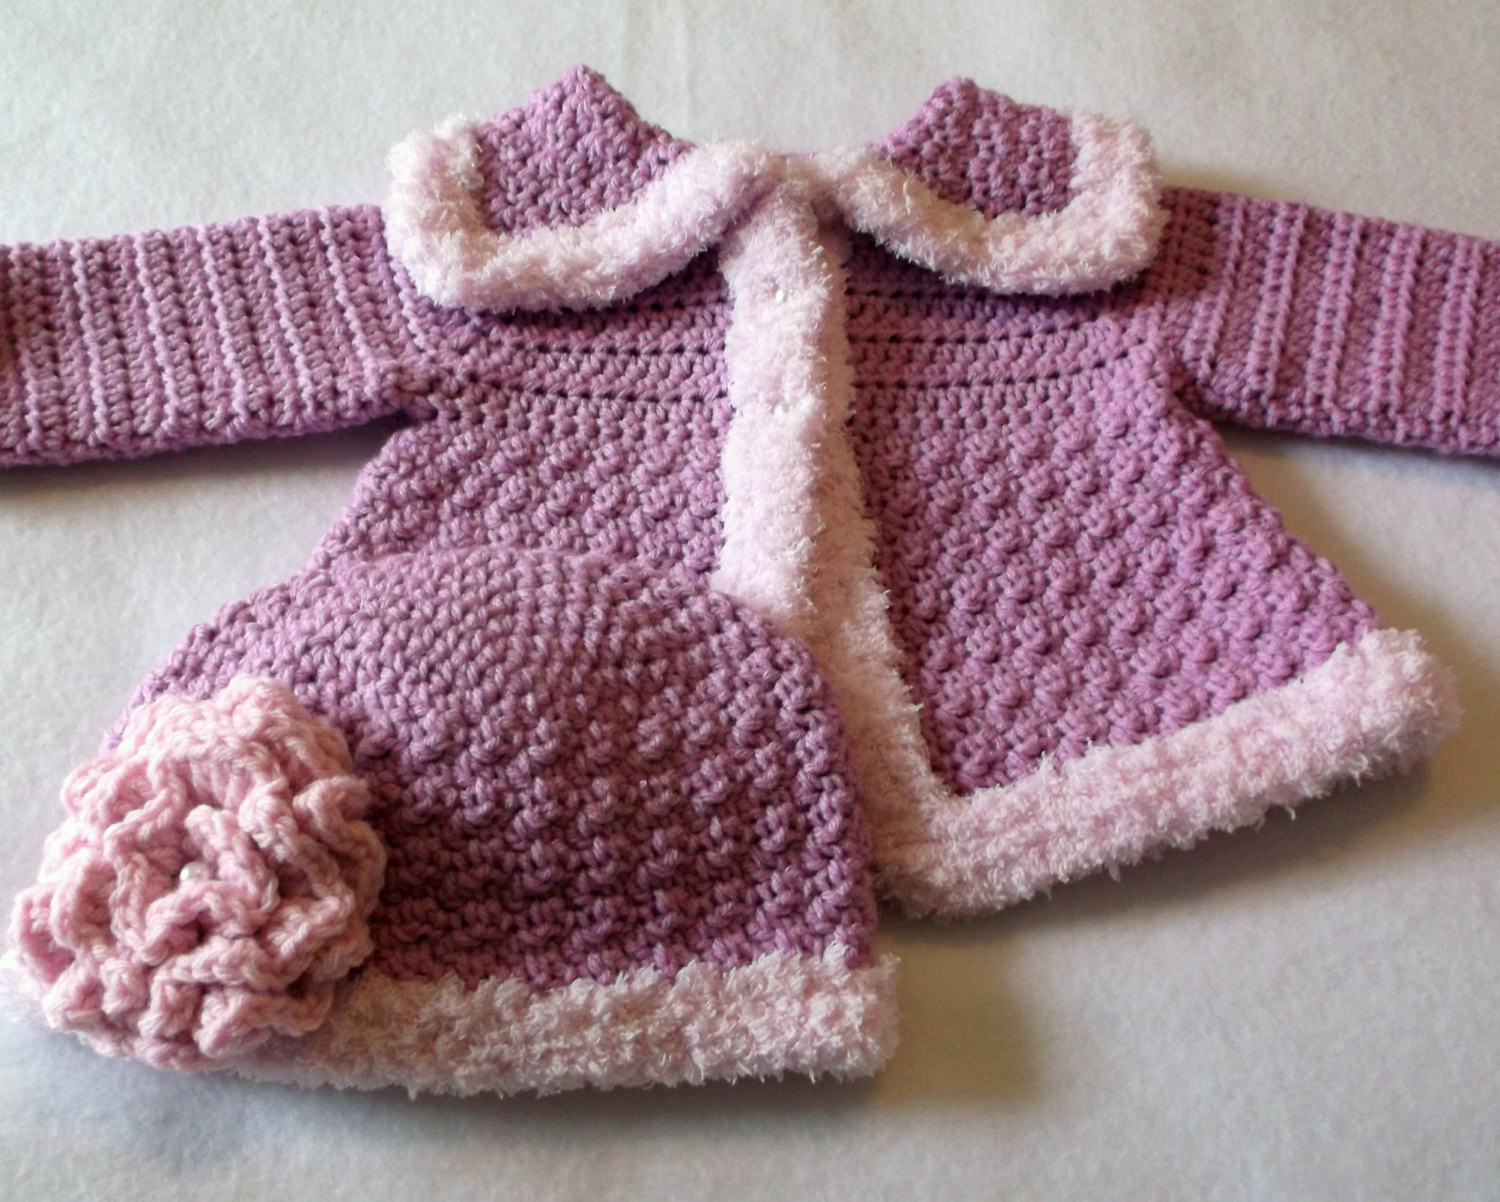 Free Baby Sweater Patterns Awesome Crochet Pattern Baby Sweater & Hat Patterns the Charlie Of New 42 Pics Free Baby Sweater Patterns